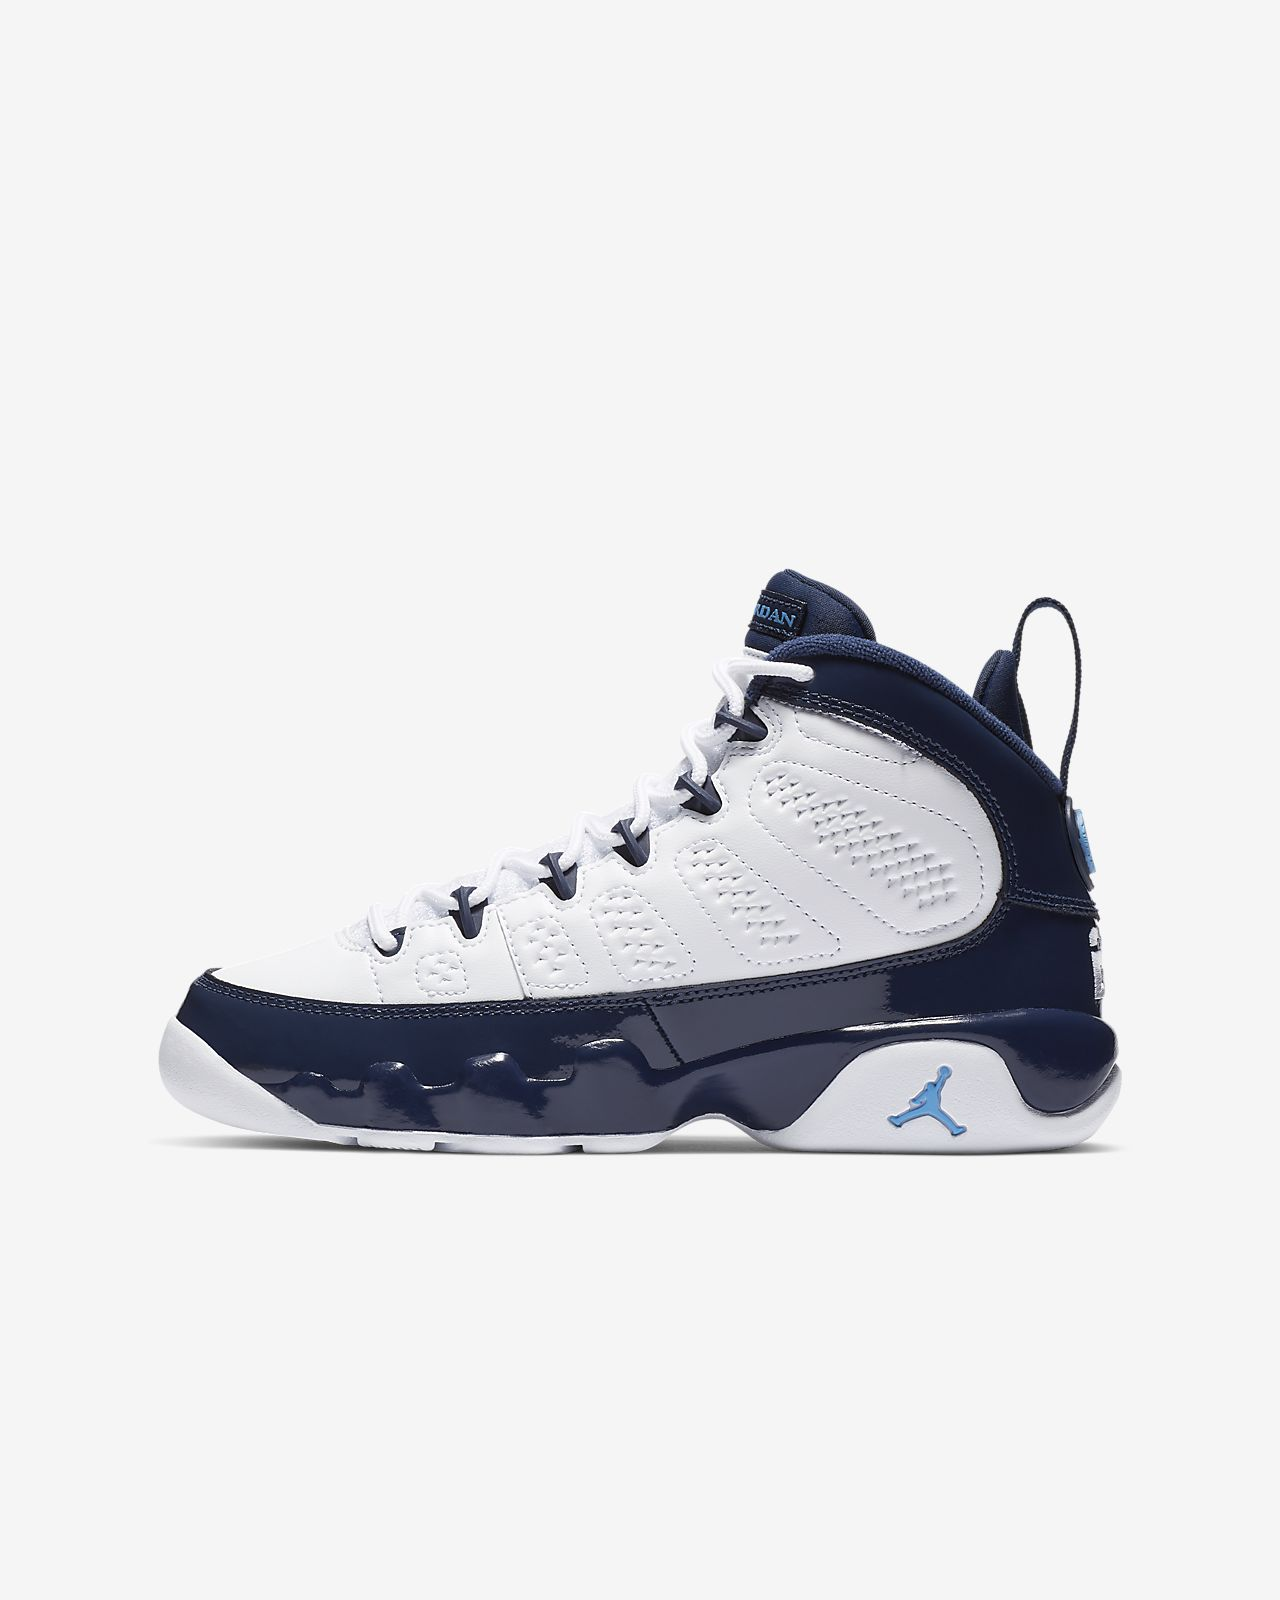 outlet store 225a9 d59f5 Air Jordan 9 Retro